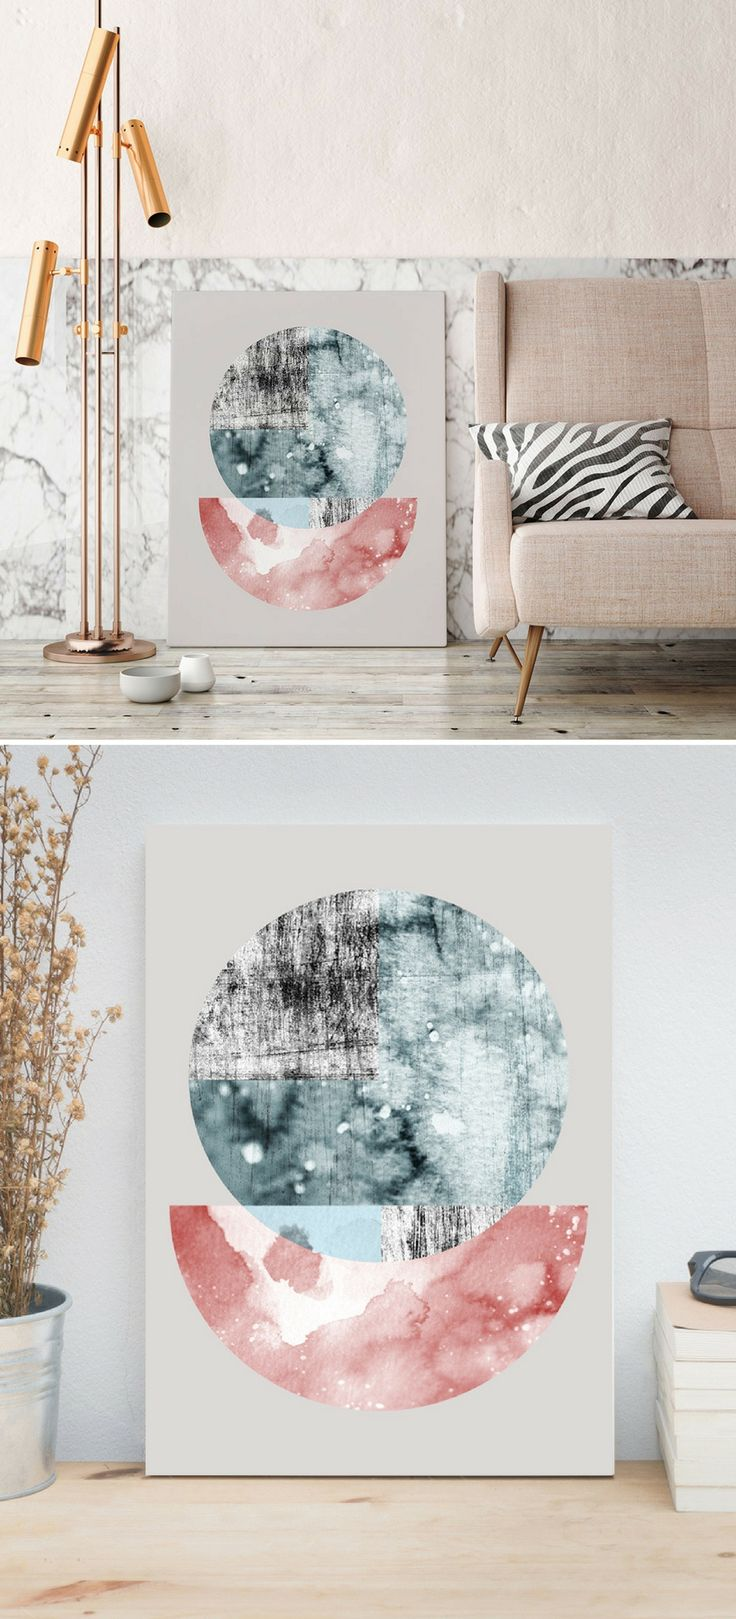 The watercolor abstract moon art print is designed for a decoration of the contemporary interior. From $17 + FREE SHIPPING WORLDWIDE from U.S.